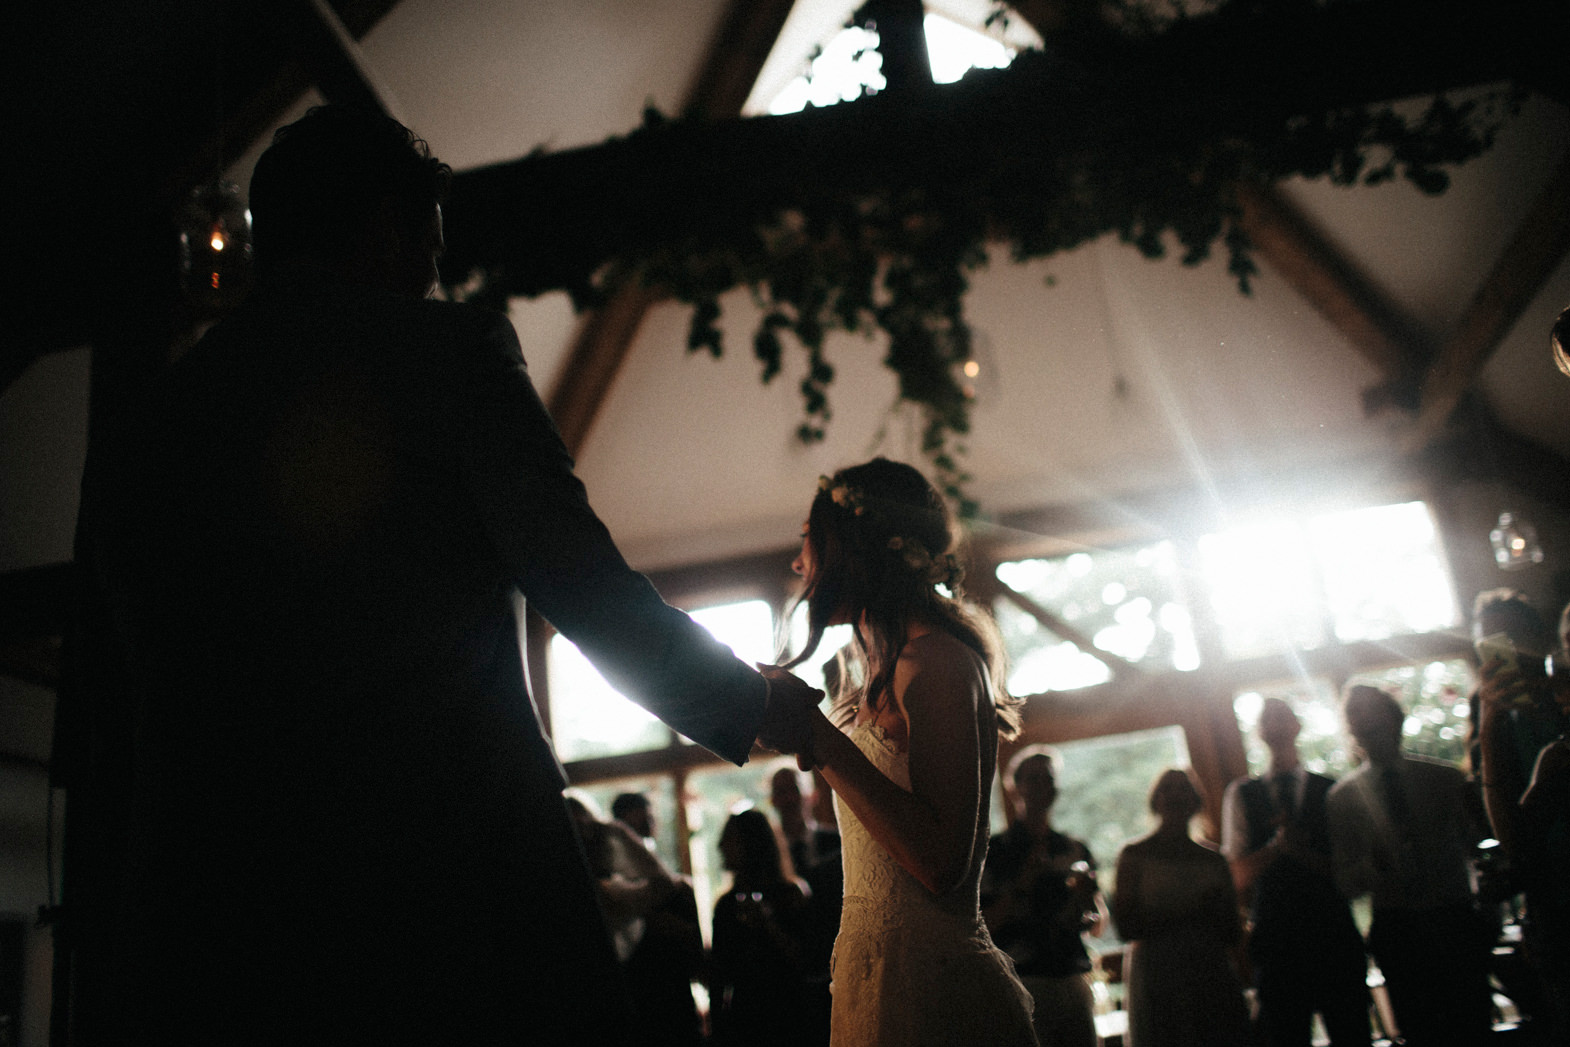 WEDDING PHOTOGRAPHy AT NANCARROW FARM (158).jpg